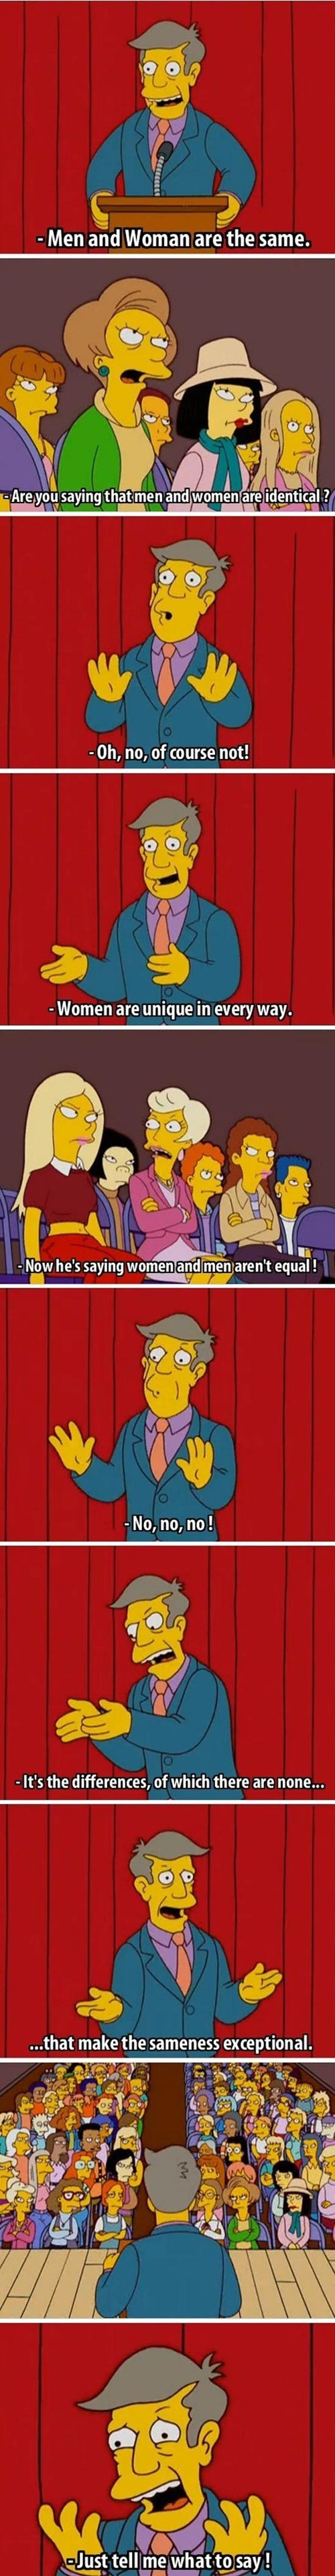 gender issues feminism the simpsons battle of the sexes - 8339695616